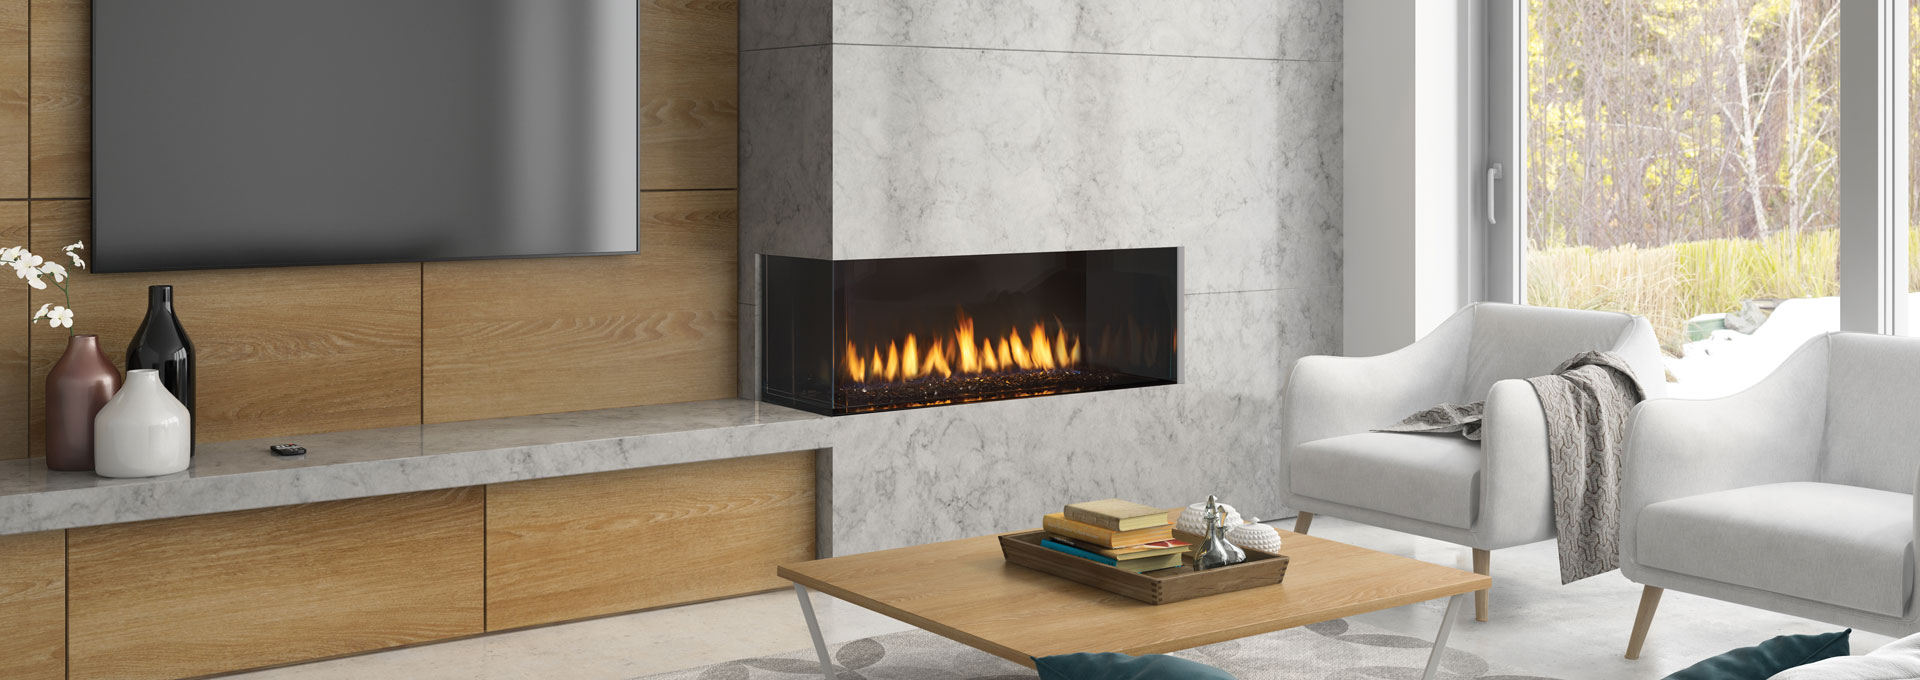 gas fireplaces regency fireplace products